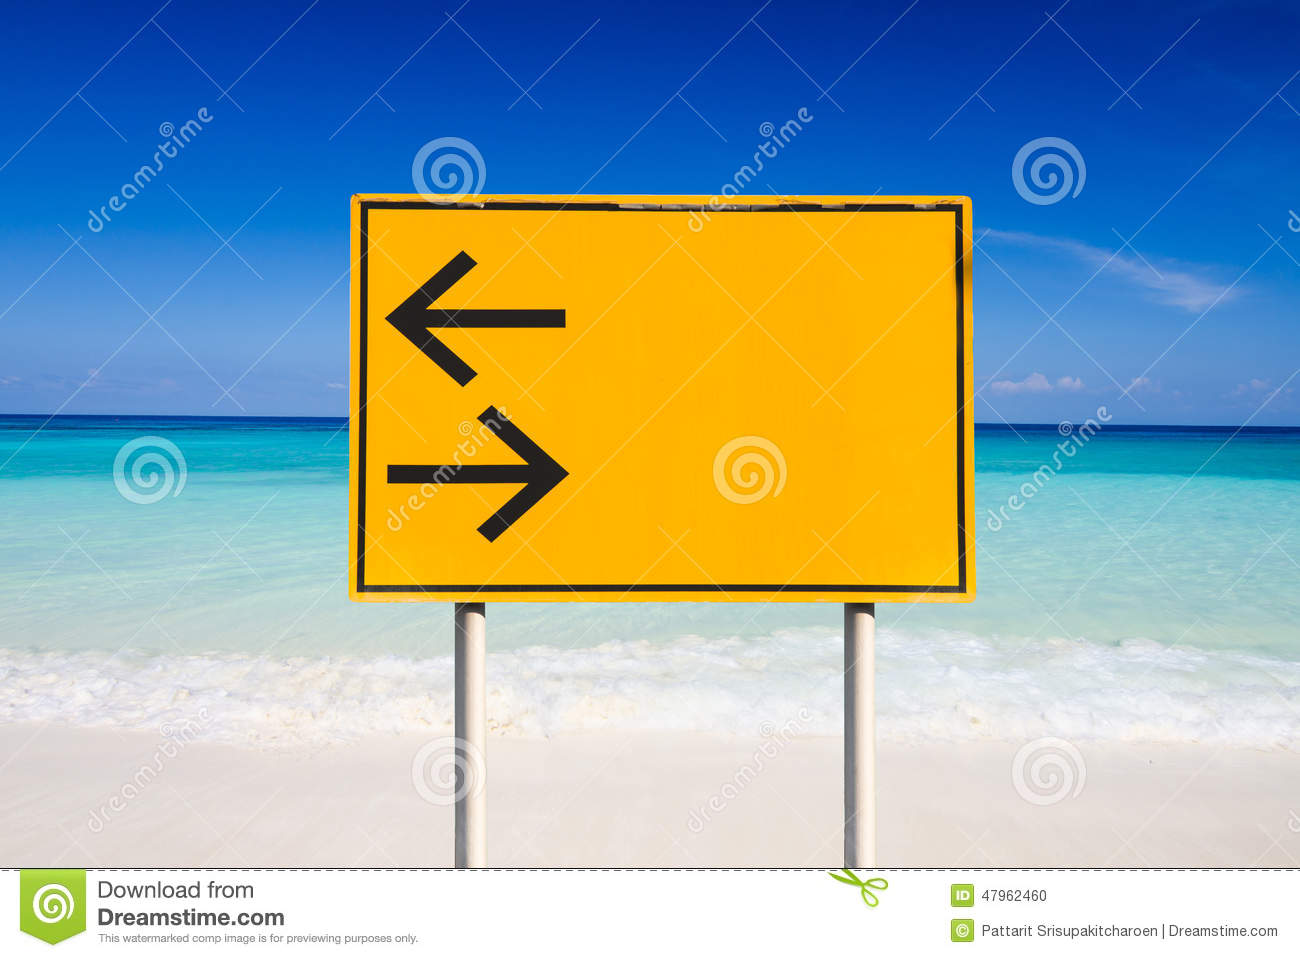 Turn Left At The Ocean